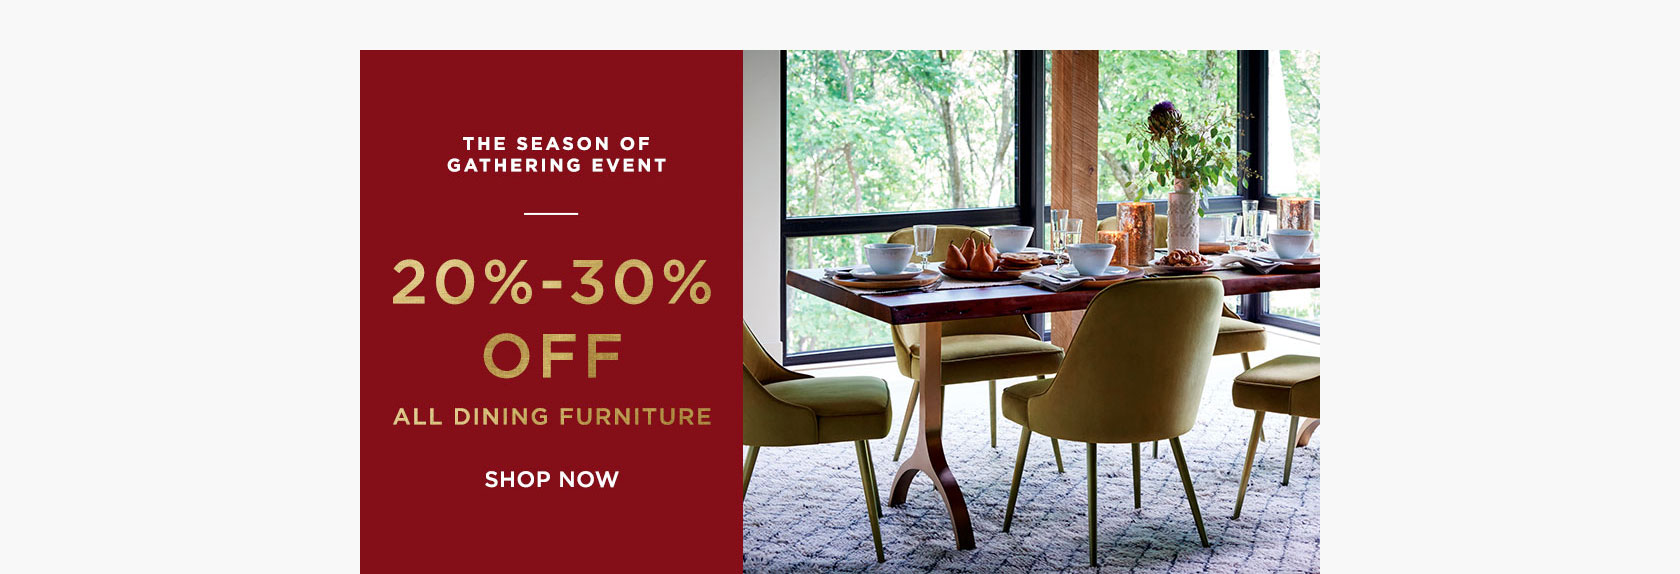 The Season of Gathering Event - 20-30% Off All Dining Furniture!